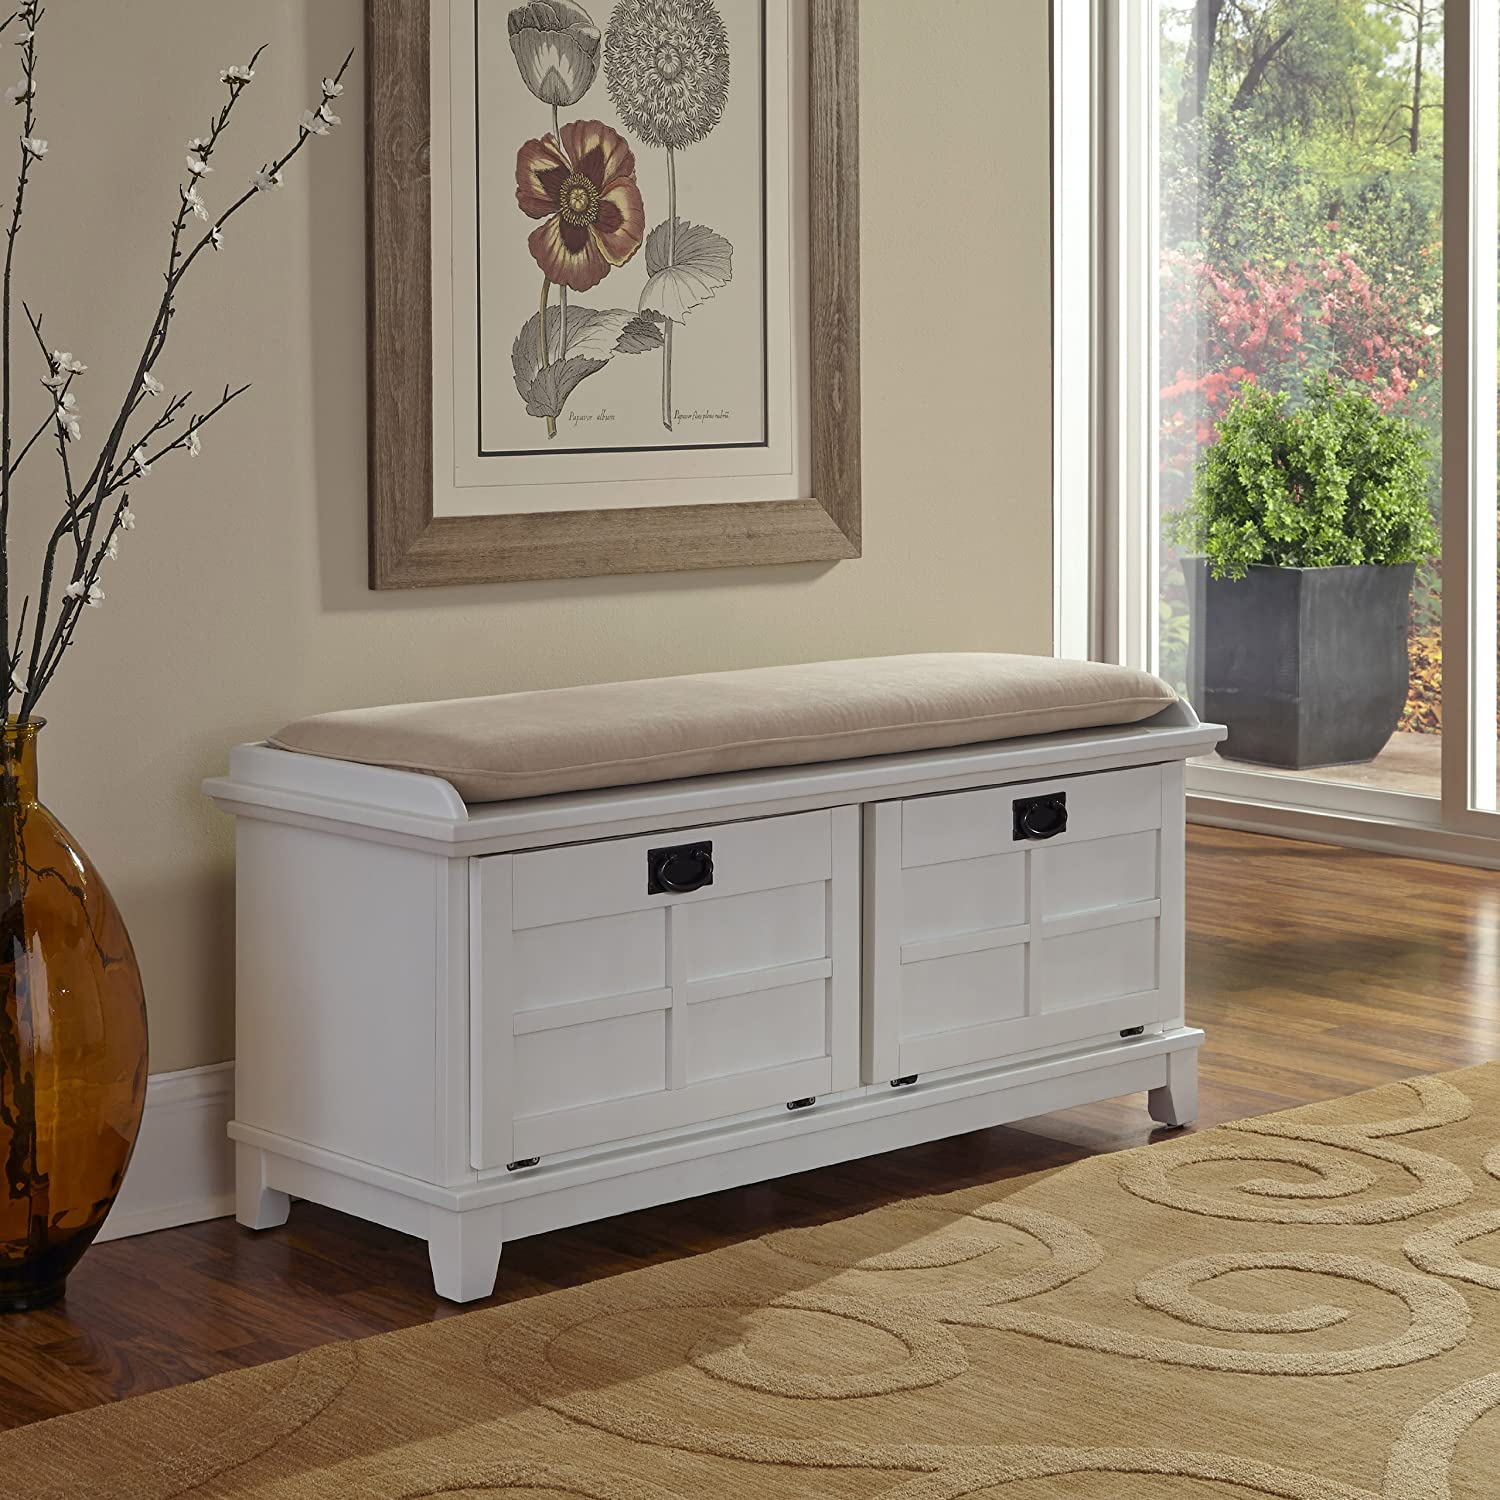 Superbe Amazon.com: Home Styles Arts And Crafts Upholstered Bench, White: Kitchen U0026  Dining